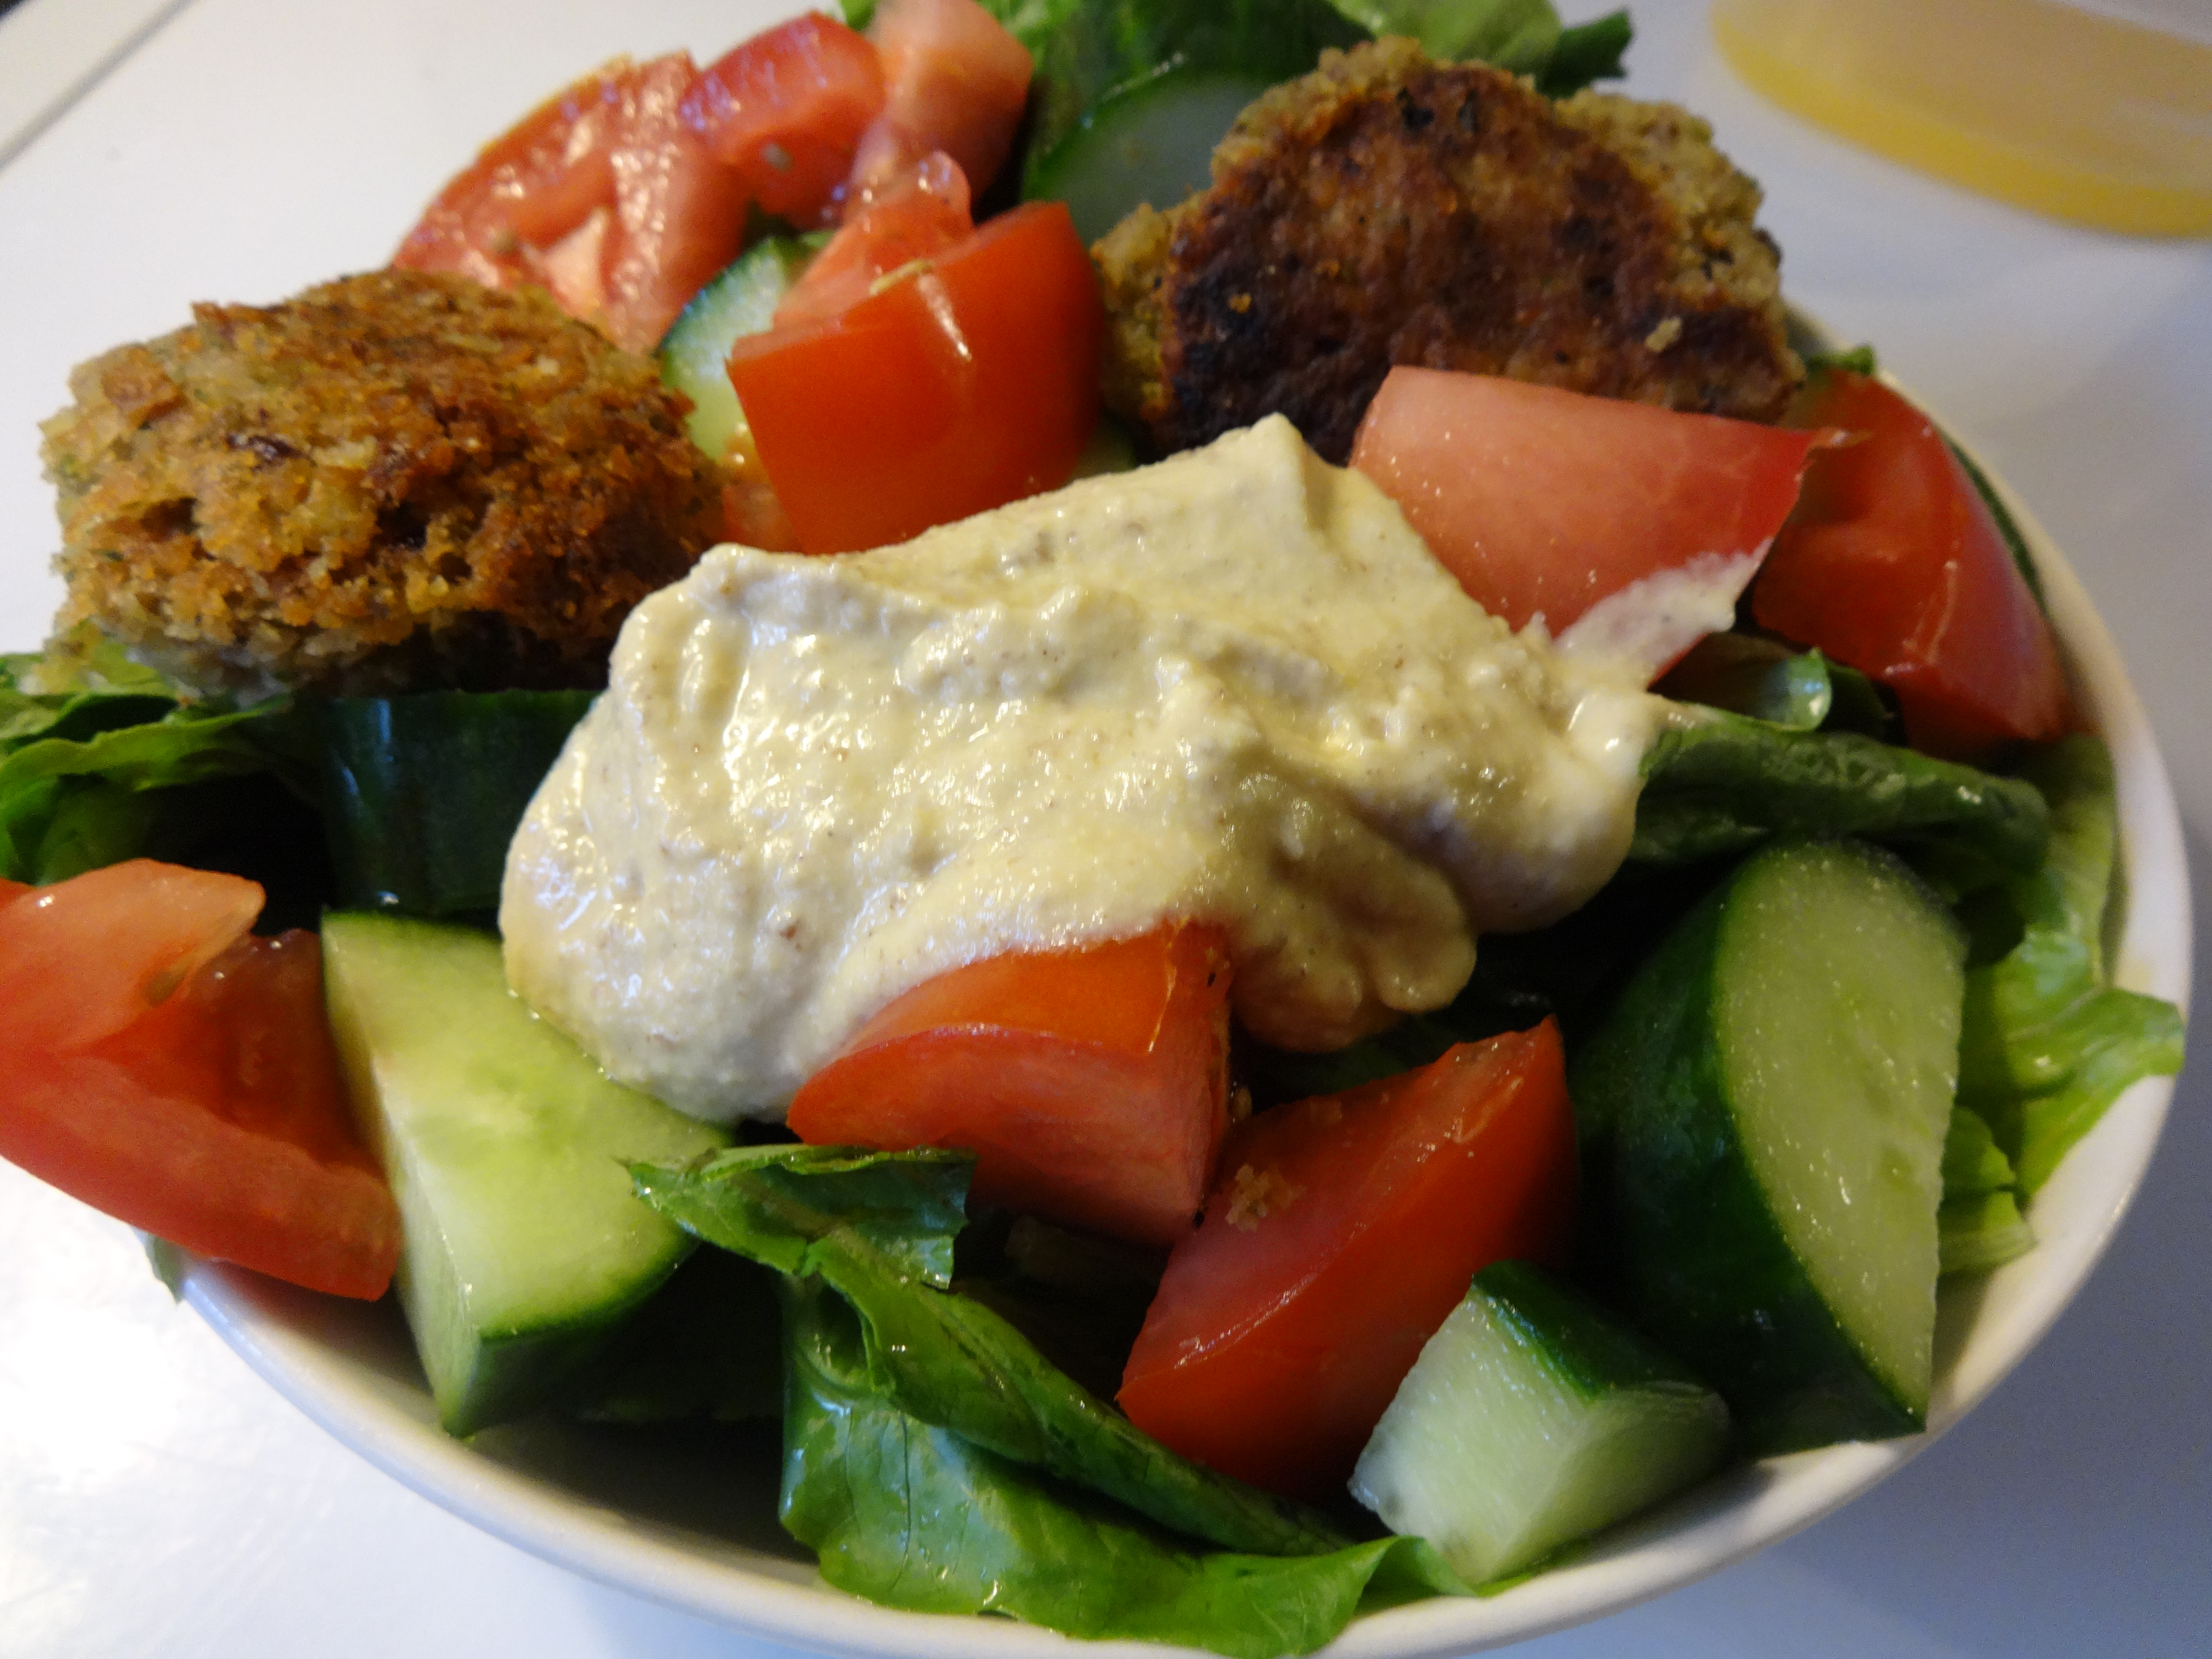 Falafel Salad with Flax Hummus (or How I Almost Ate a Cup of Coconut Oil) (Vegan, Gluten-Free)